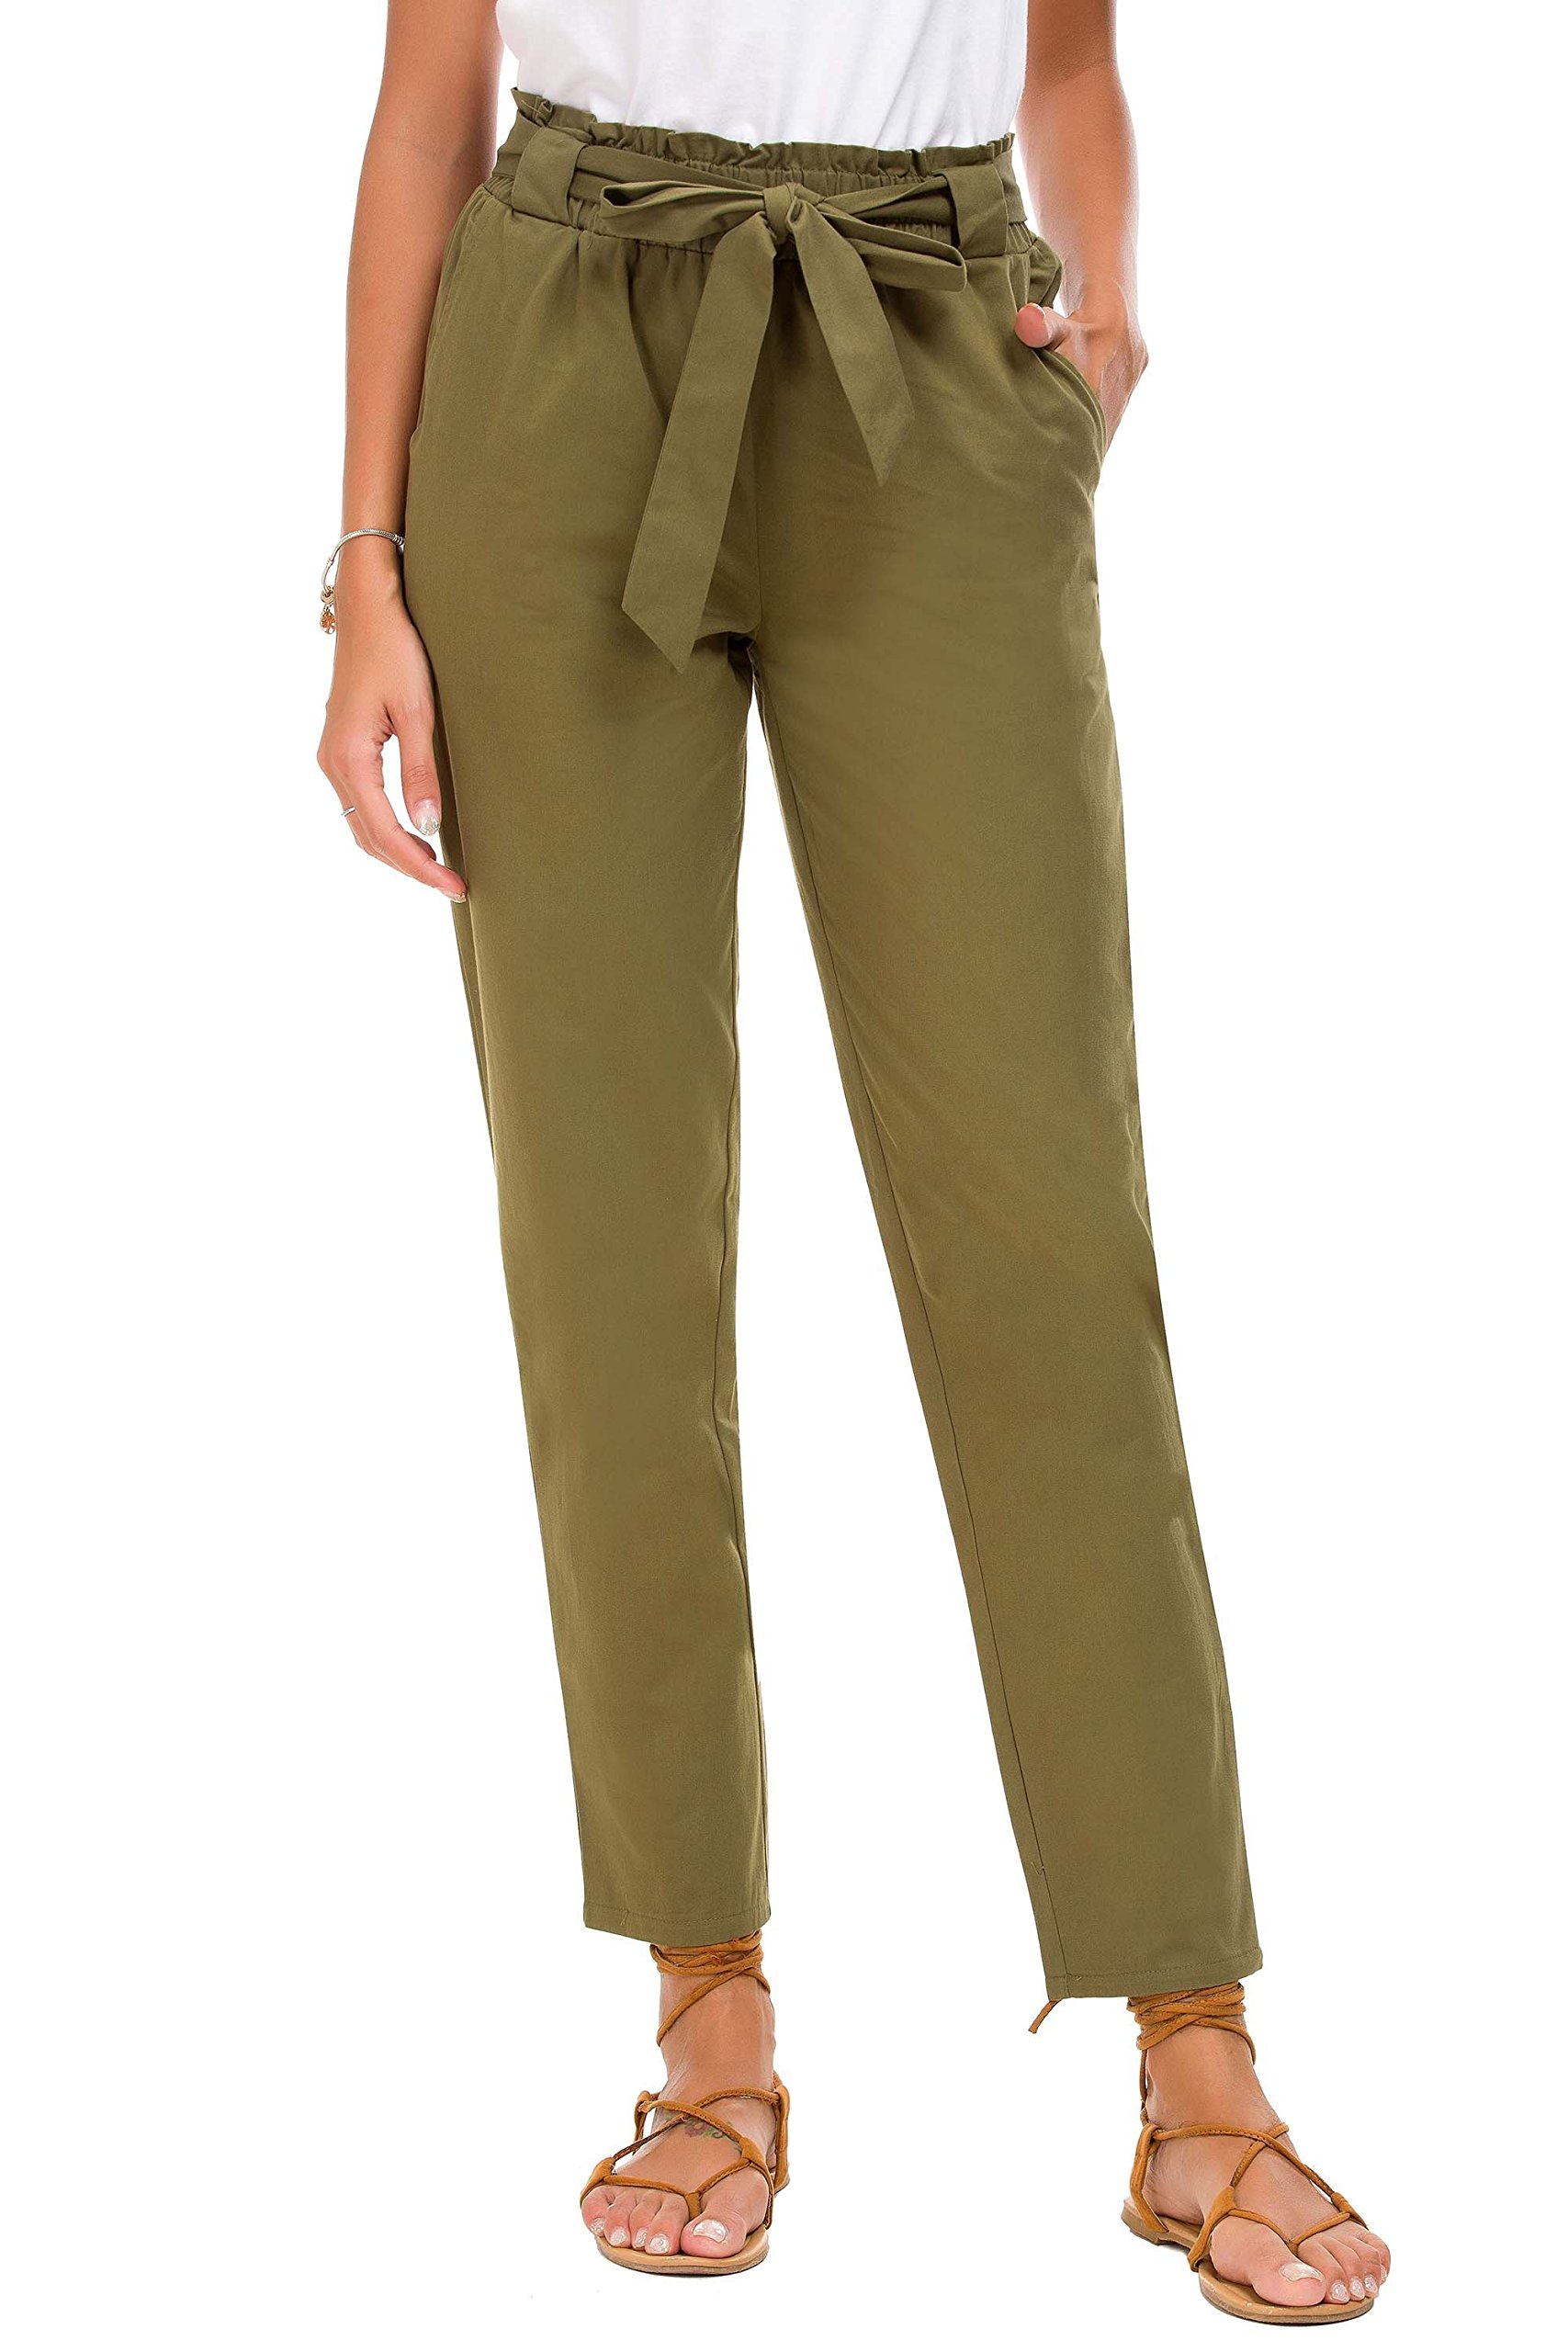 Feraco Women's Casual Stretch High Waisted Pants Tapered Pencil Ankle Pant with Bow Tie, Green Medium